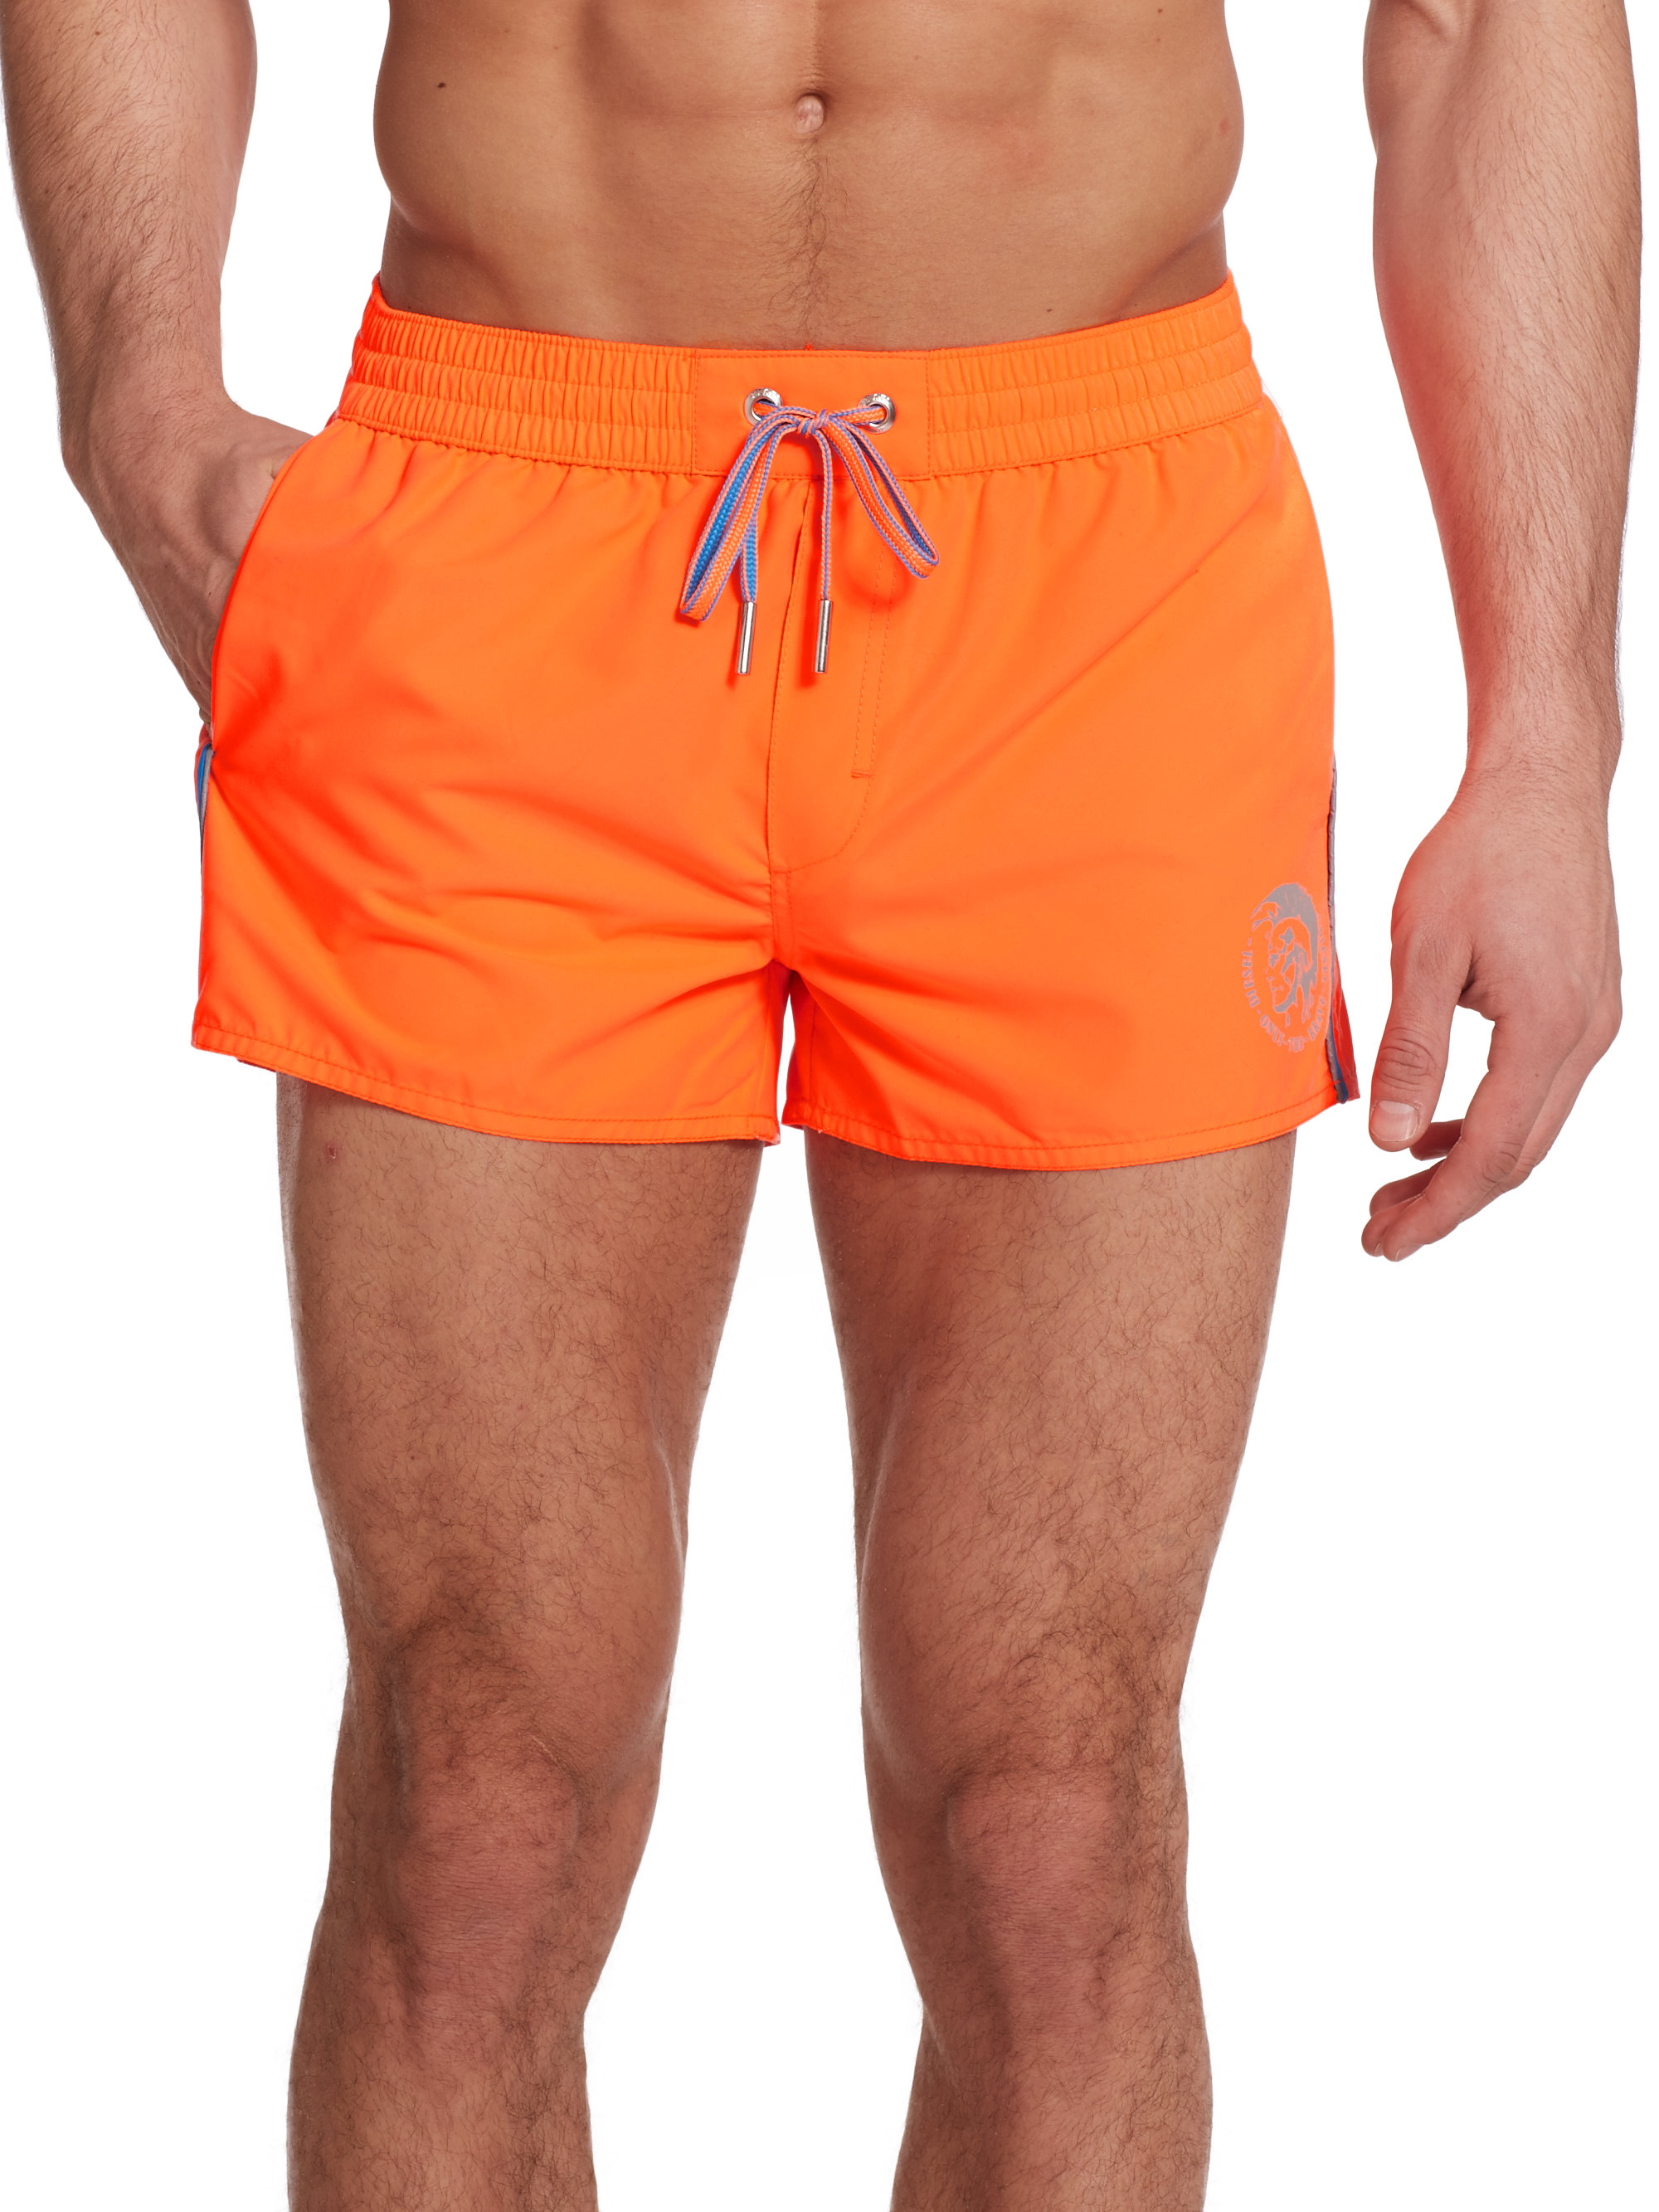 Go Shorter and Slimmer Orlebar Brown I know this isn't what you like to have in mind when referring to the lower part of your anatomy, but when it comes to swim trunks, extra length and girth only earn you negative style points.